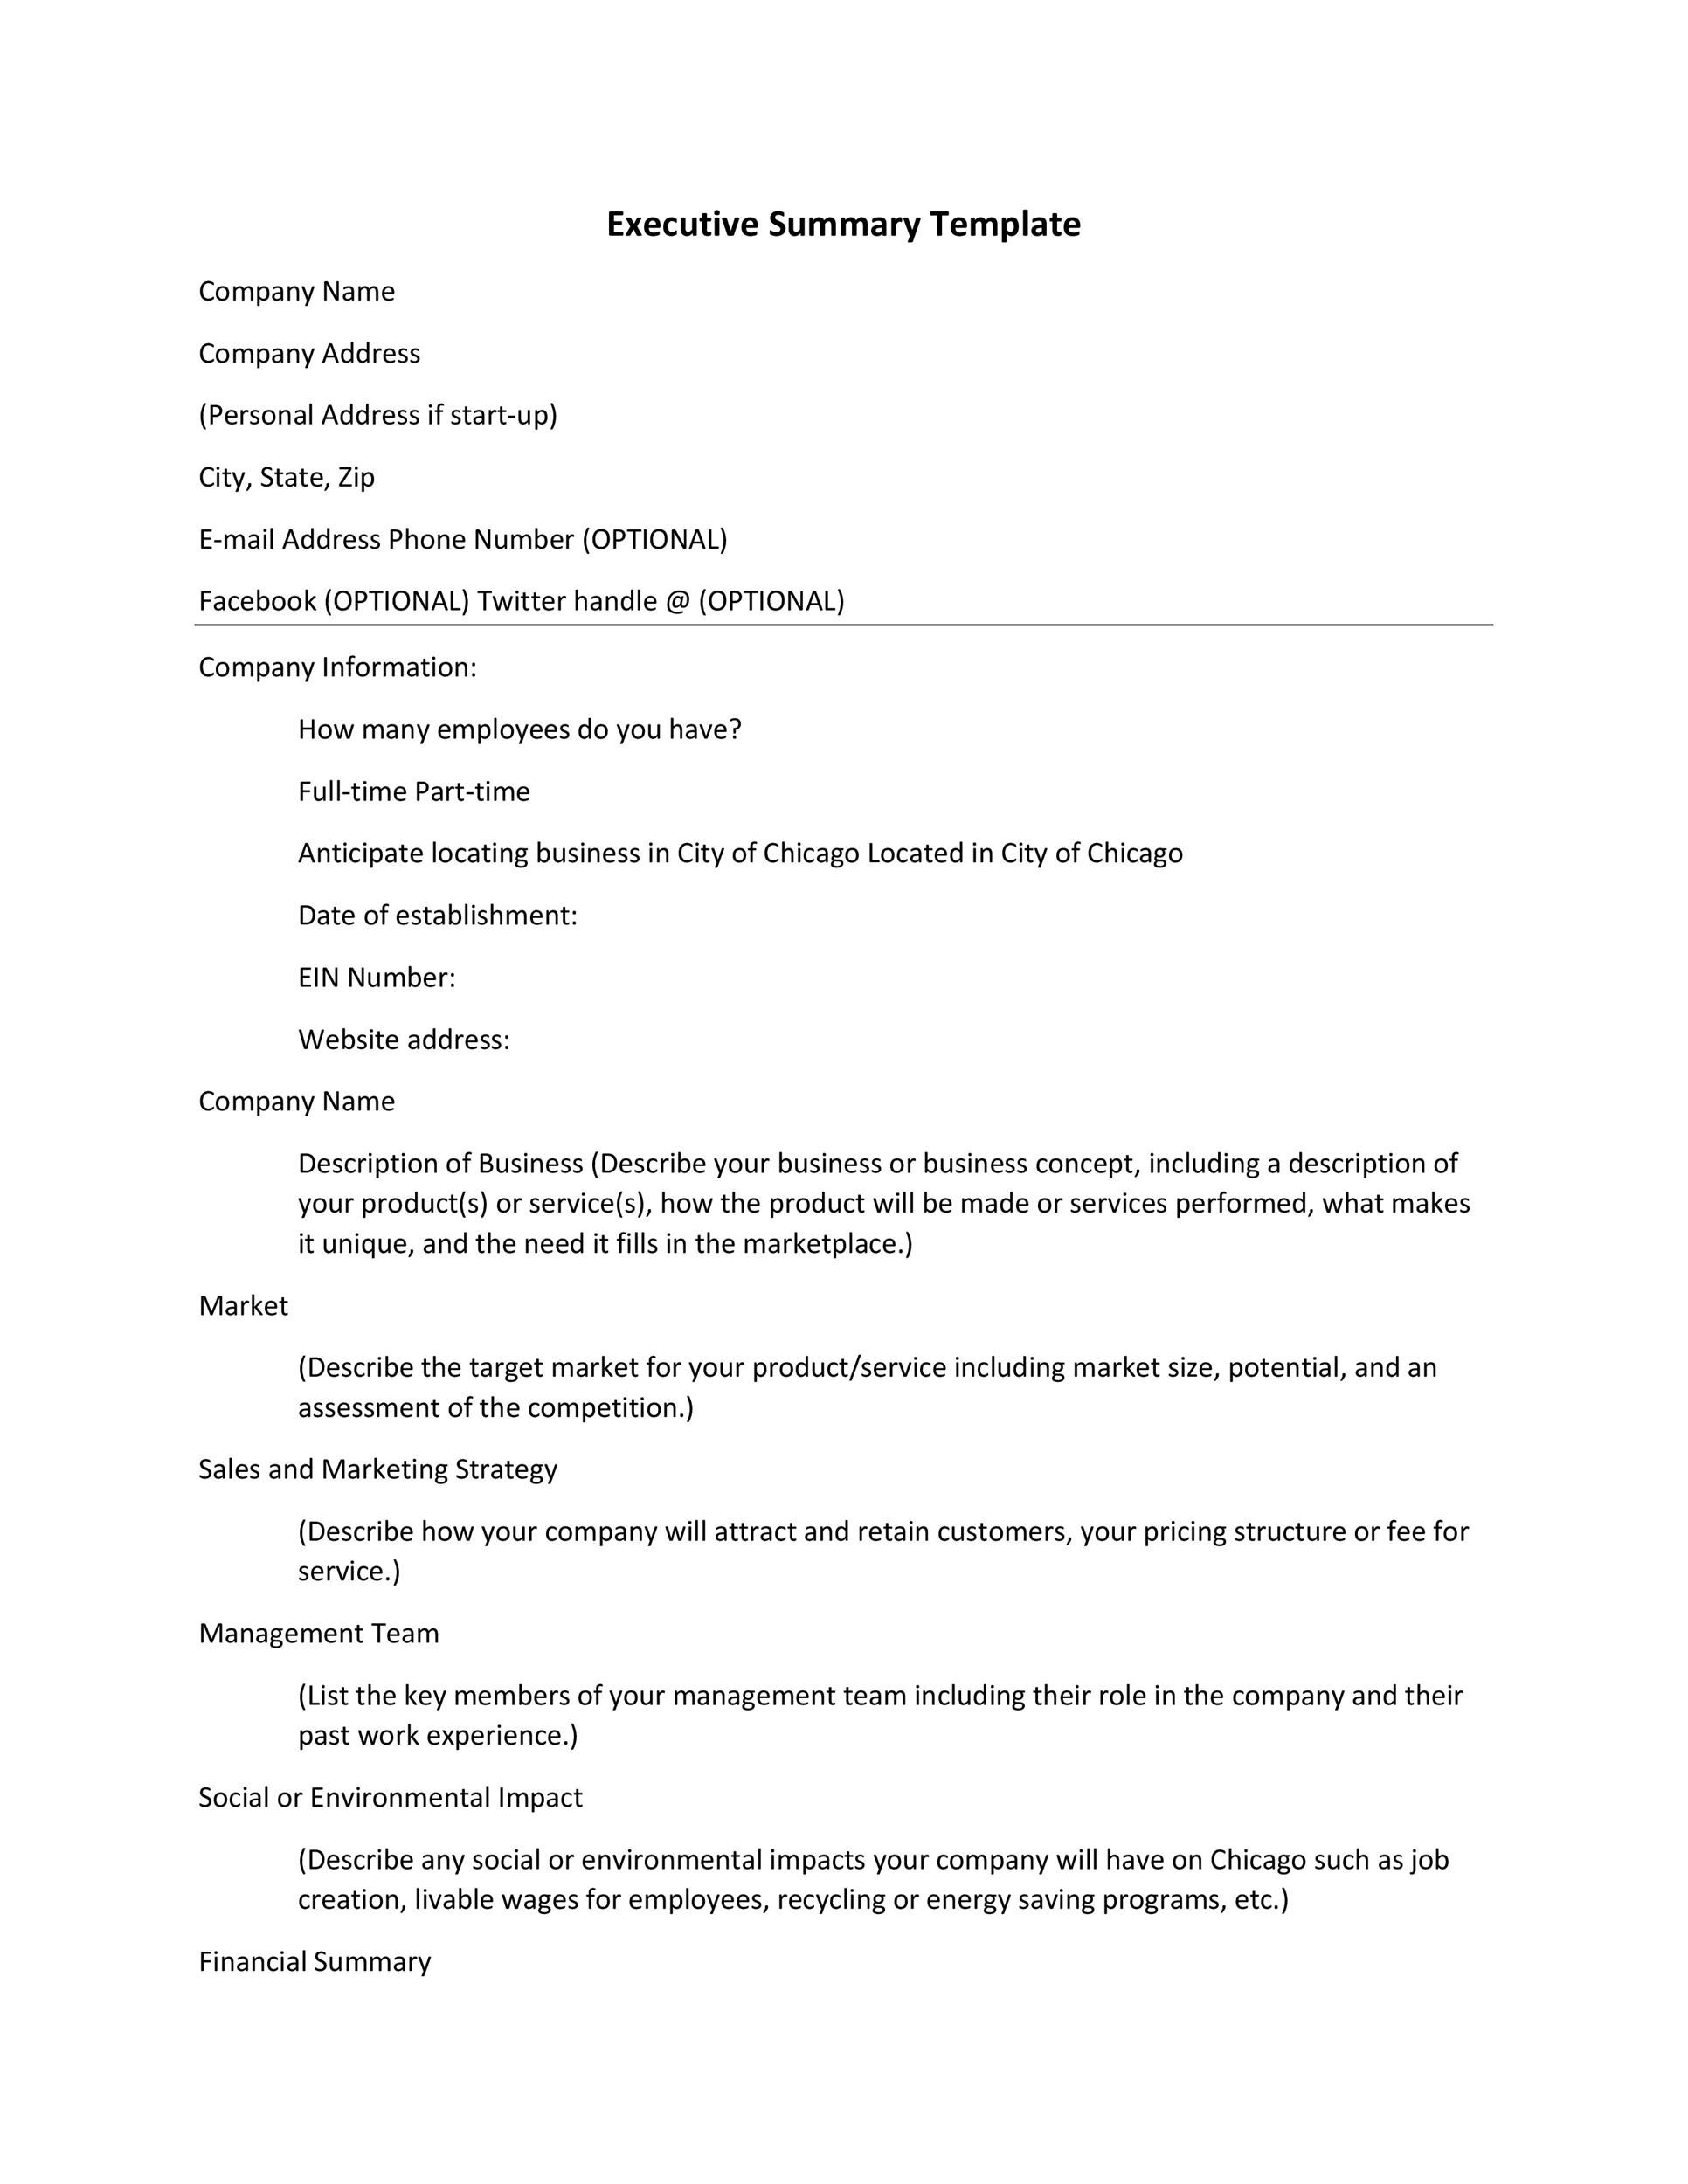 Executive Summary Template 11